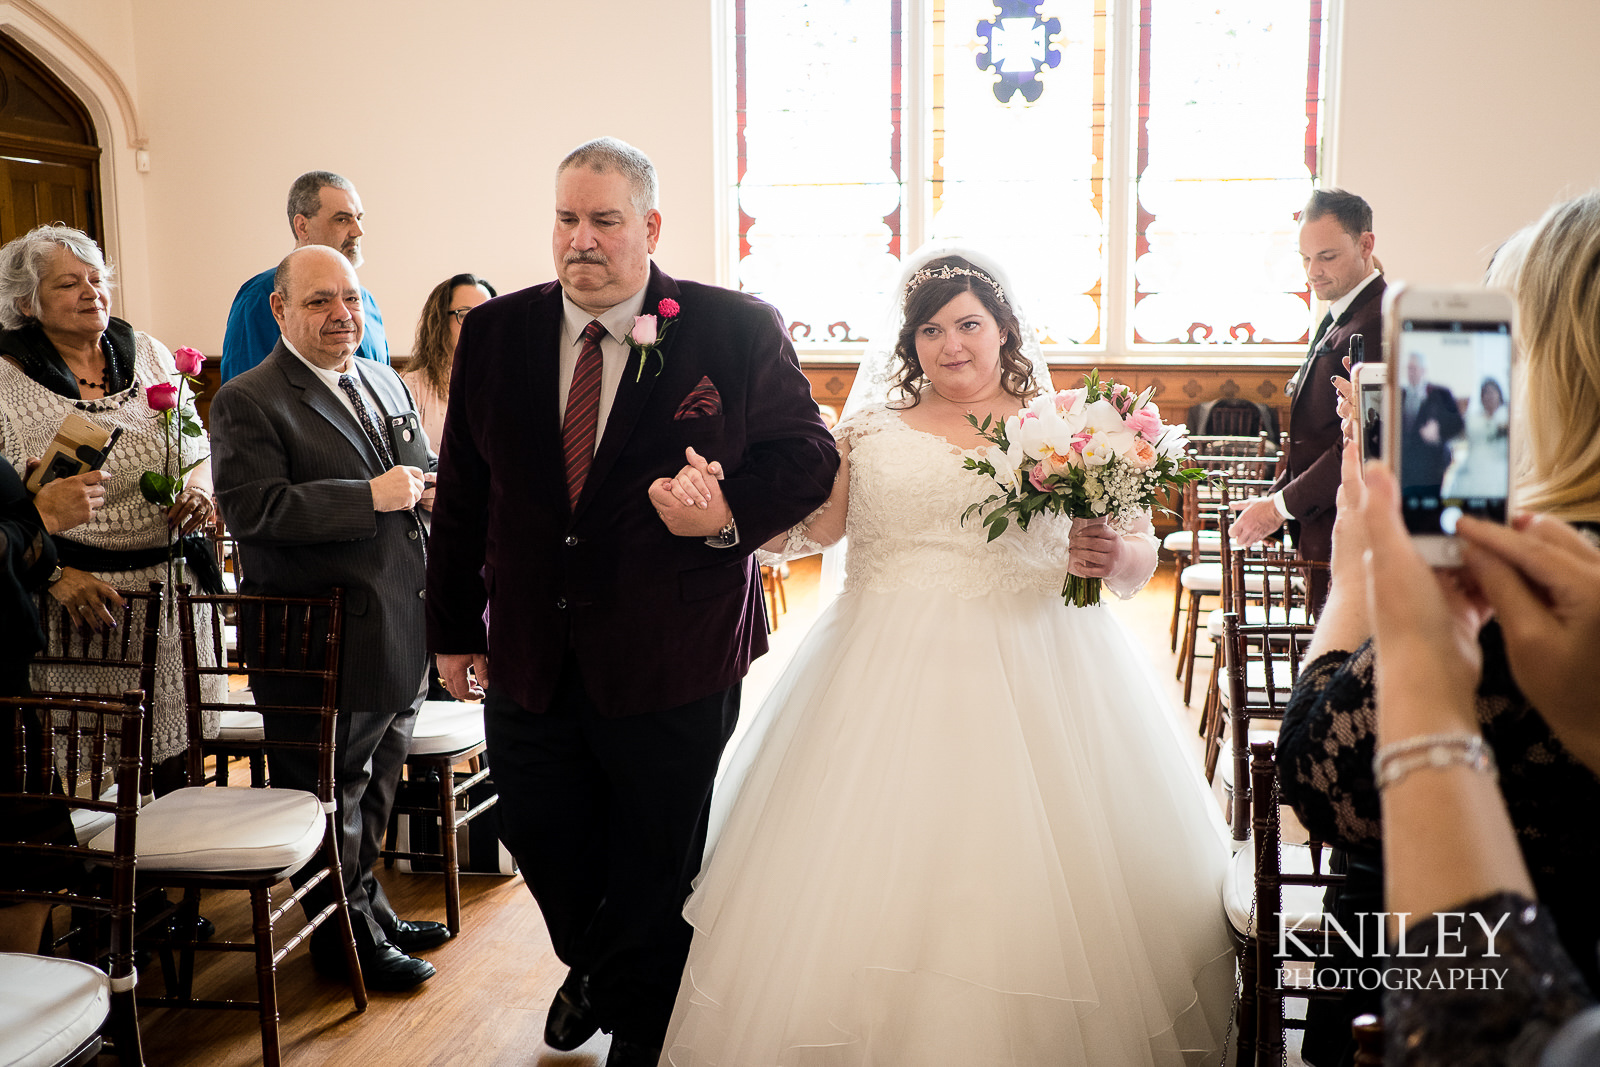 034 - Westminster Chapel - Rochester NY wedding photo - Kniley Photography.jpg